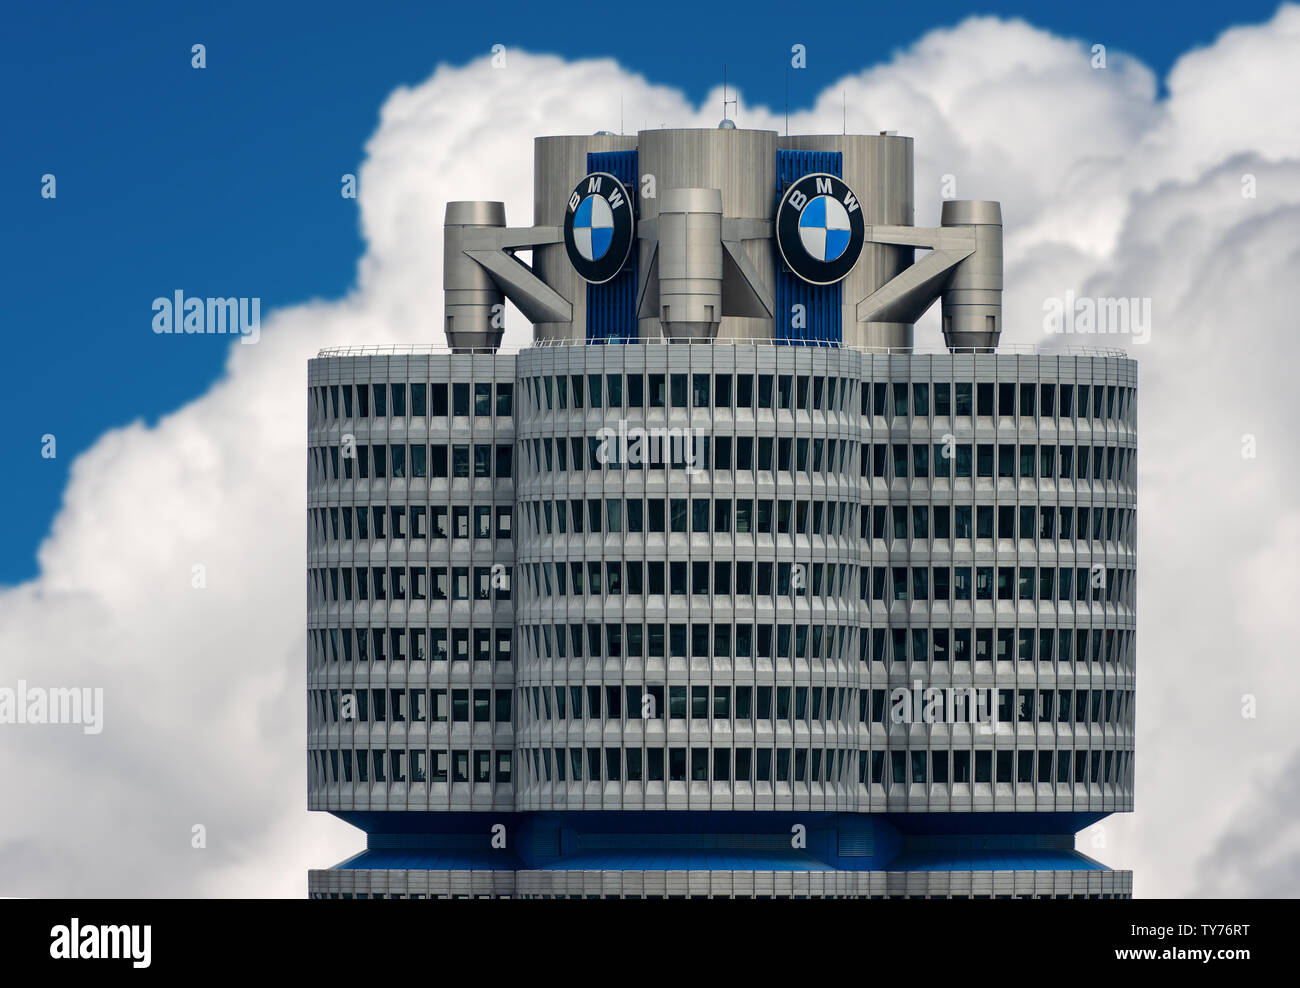 The tower of the BMW (BMW-Vierzylinder or BMW-Turm) landmark serving as world headquarters for the Bavarian automaker. Architect, Karl Schwanzer - Stock Image